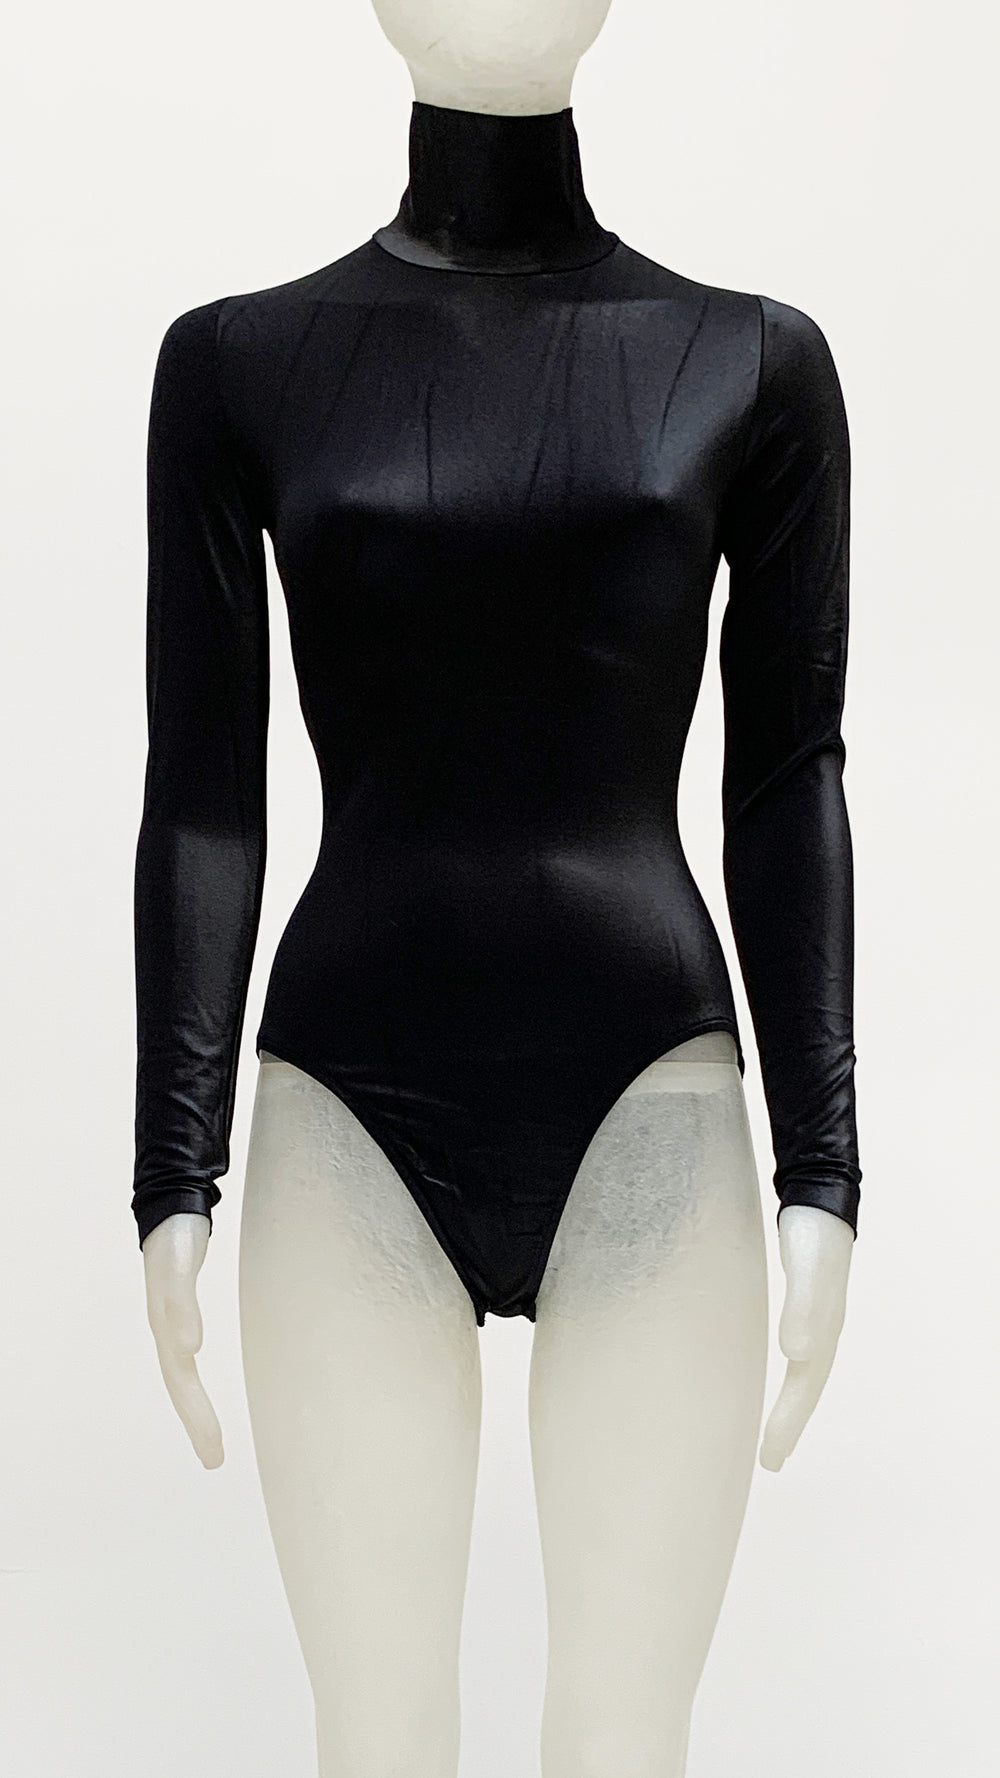 LONG SLEEVE TURTLE BODYSUIT - 1